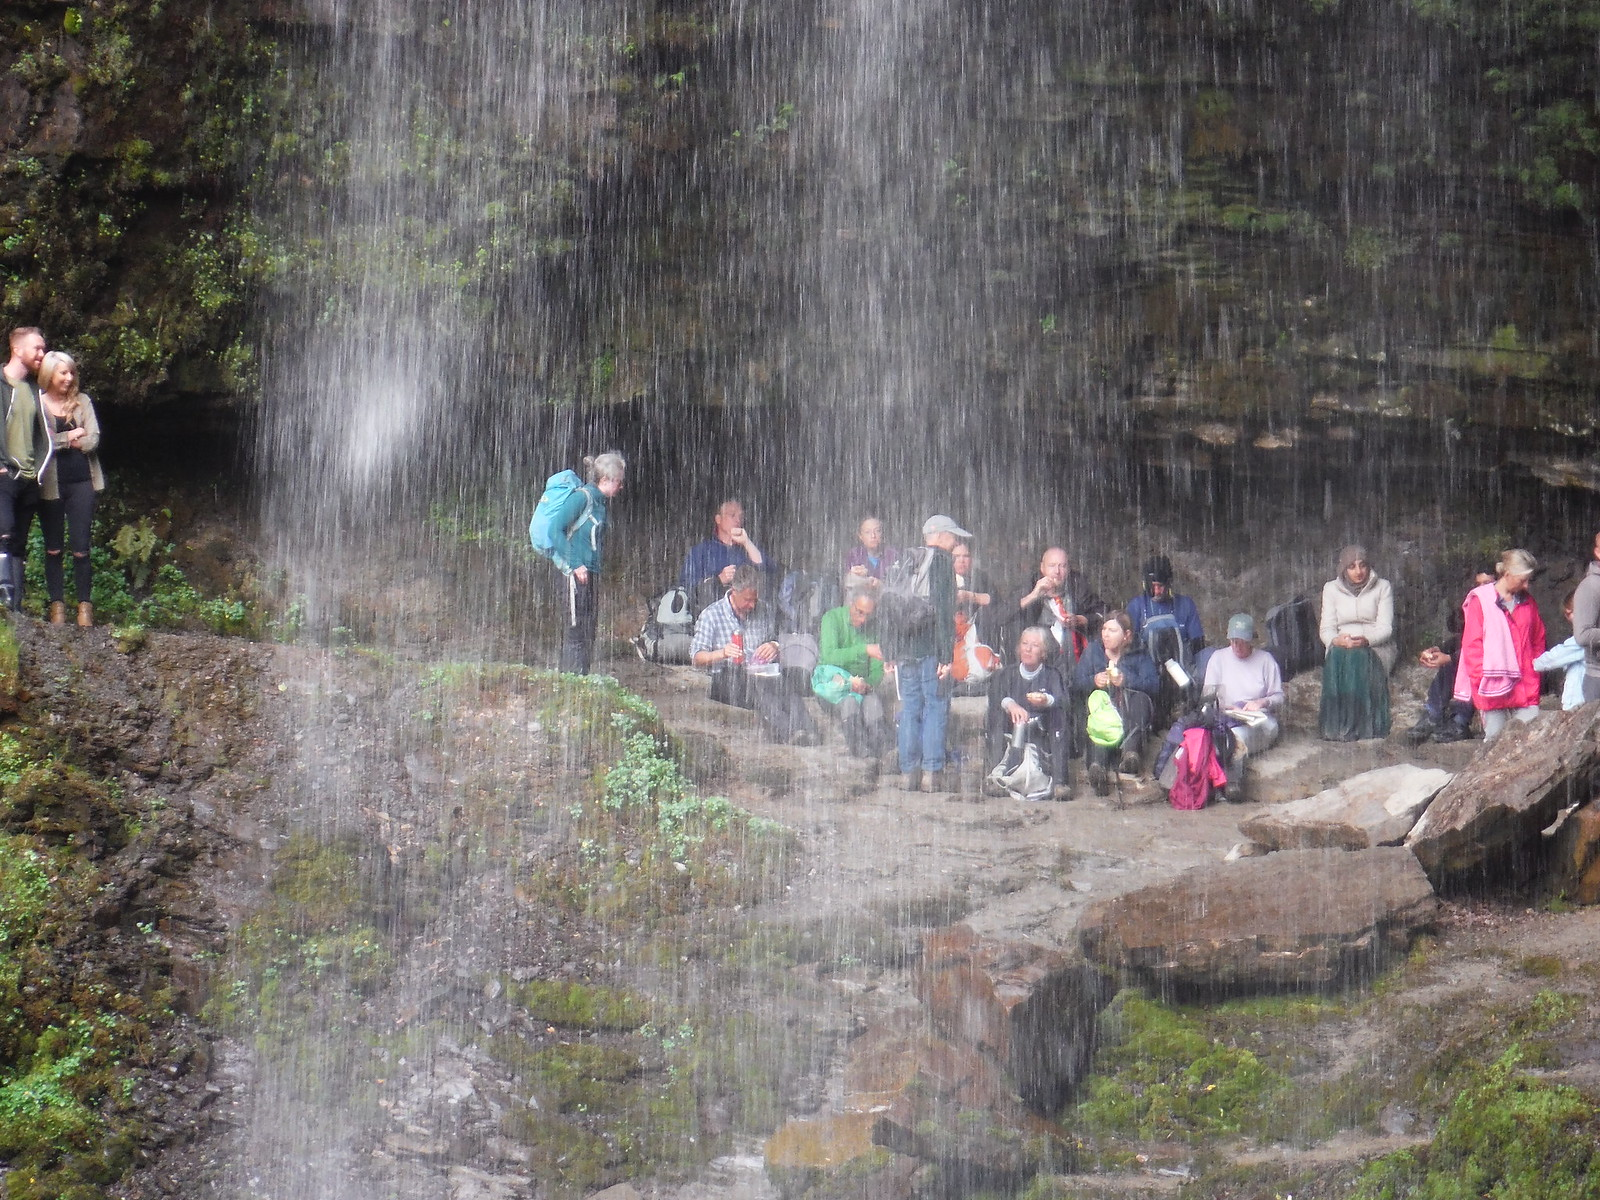 SWC Advance Group behind Sgwd Henrhyd's Curtain of Water SWC Walk 280 Henrhyd Falls - Sgwd Henrhyd (Craig y Nos Circular)